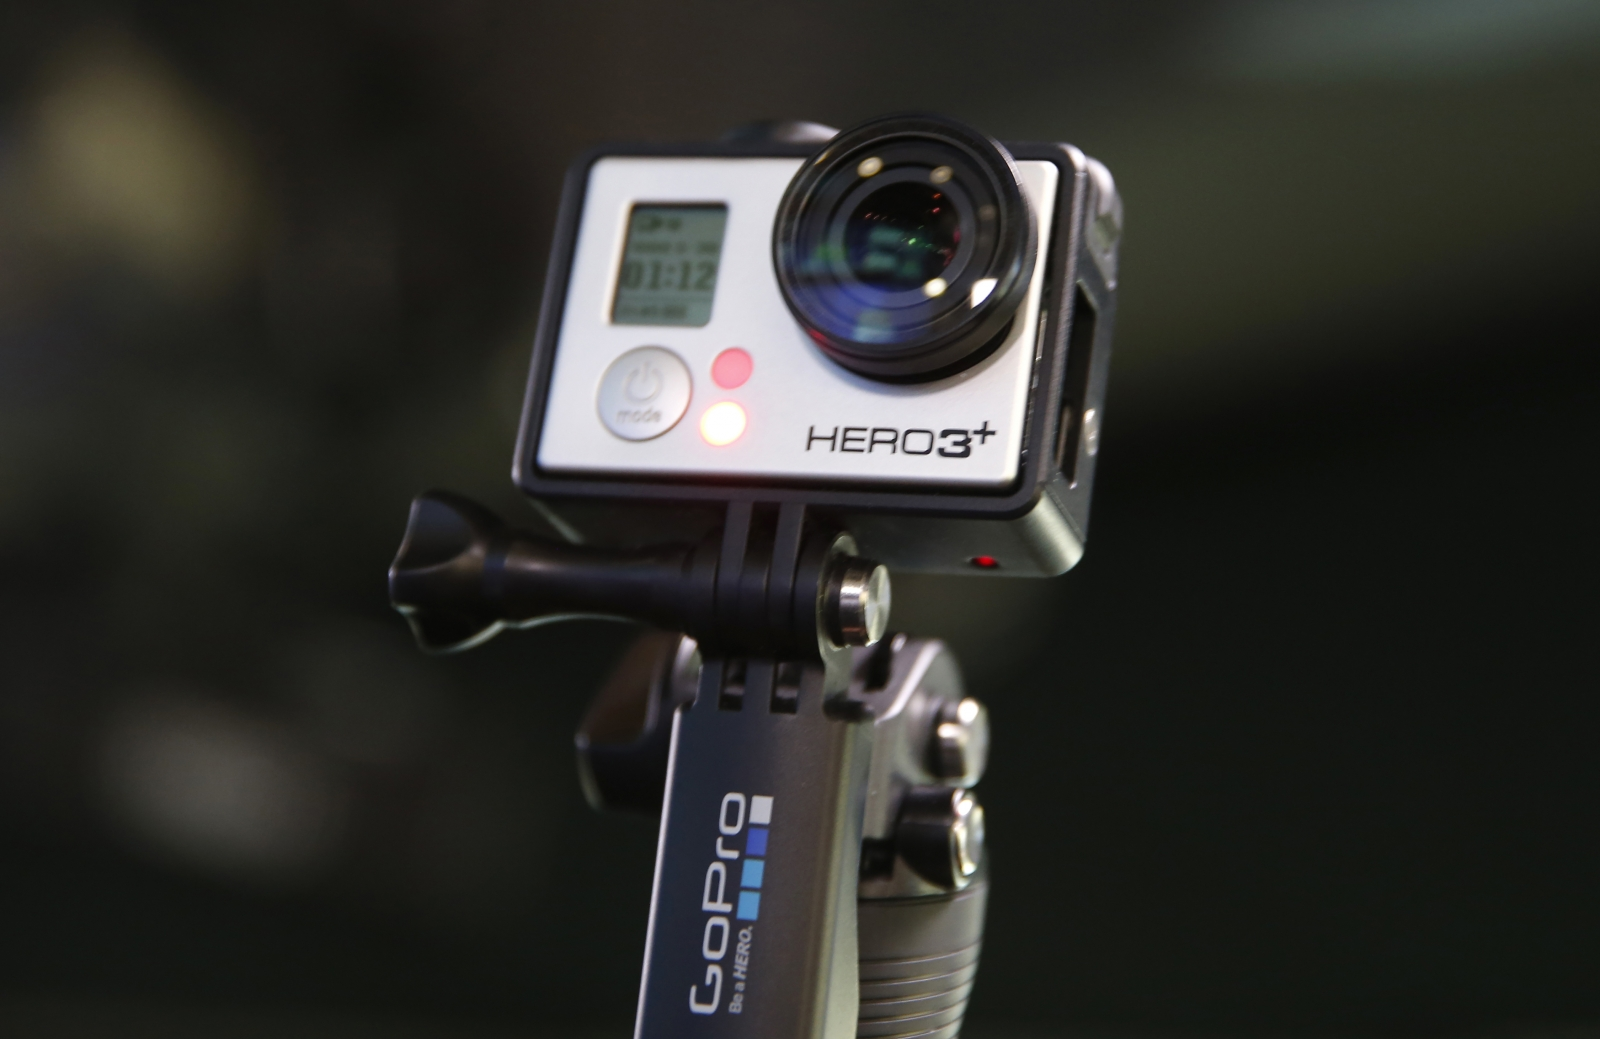 Gopro hero 3 password recovery - Gopro Update Mechanism Flaw Discovered That Enables Wi Fi Passwords To Be Harvested